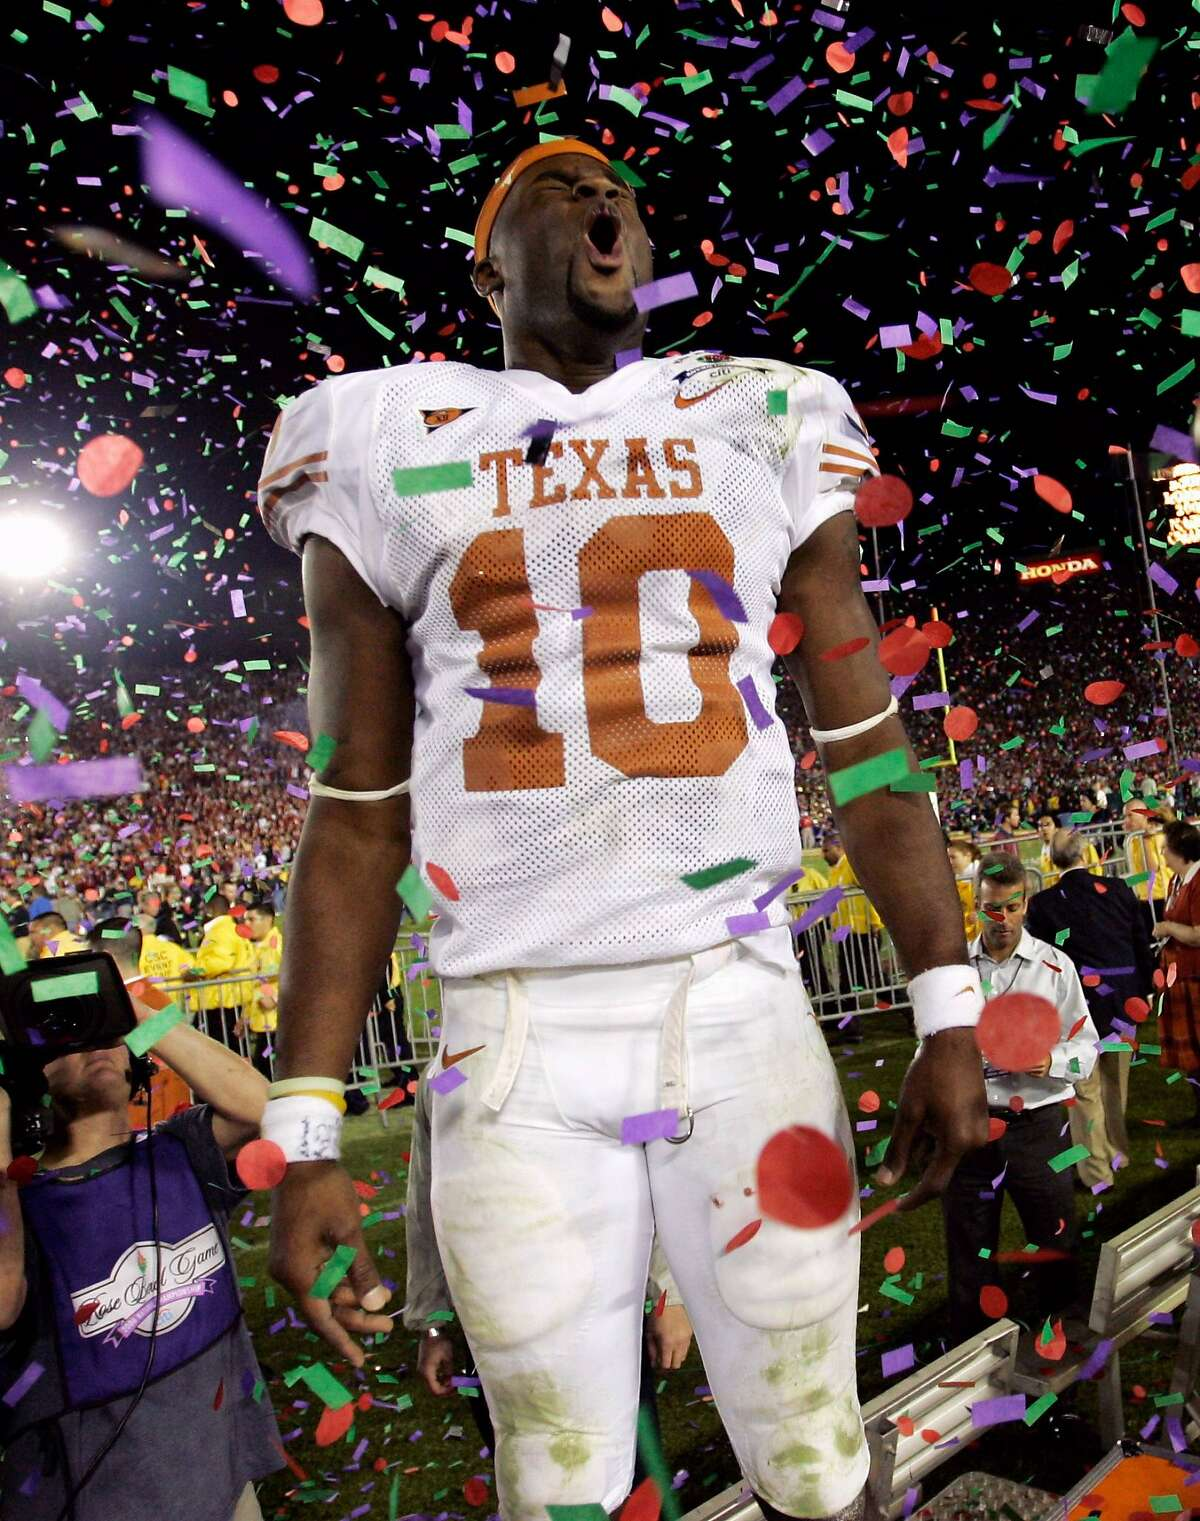 Texas Longhorns quarterback Vince Young celebrates his teams 41-38 victory over the USC Trojans for the national championship at the 92nd Rose Bowl game in Pasadena, California January 4, 2006. REUTERS/Mike Blake